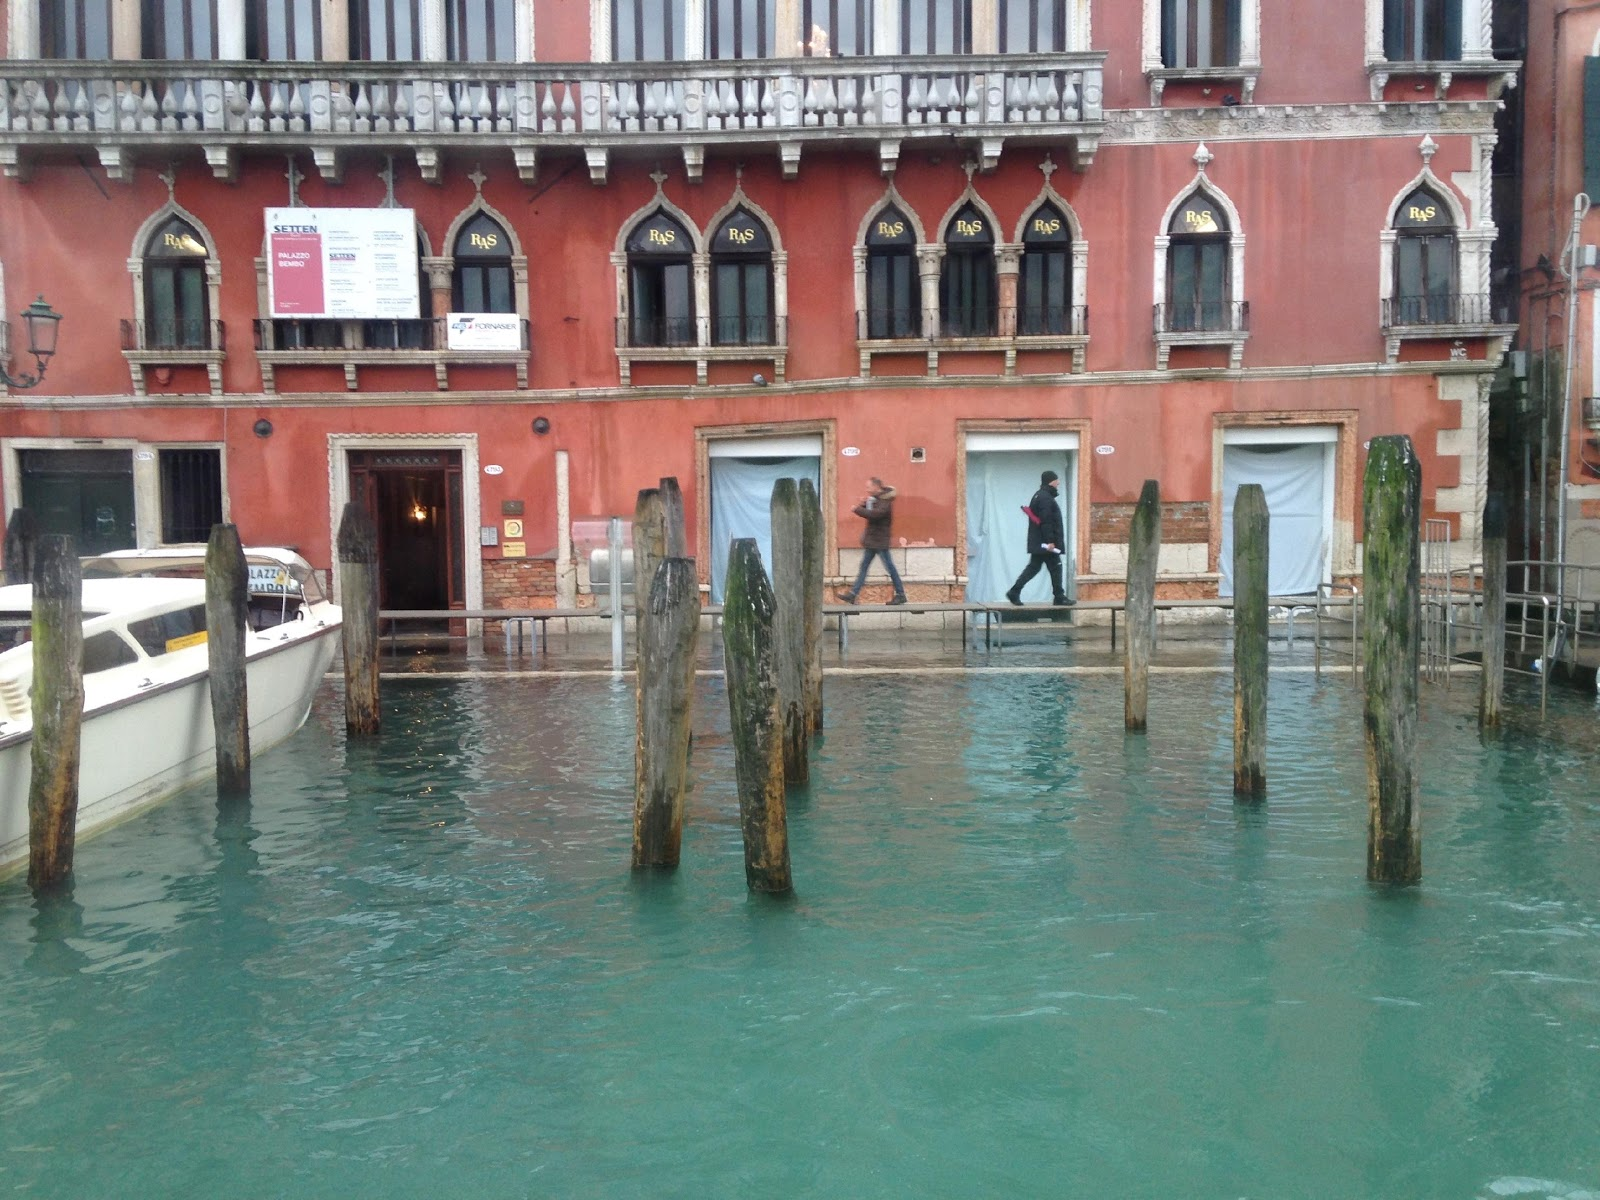 High Tide in Venice; Tables set up so people can walk